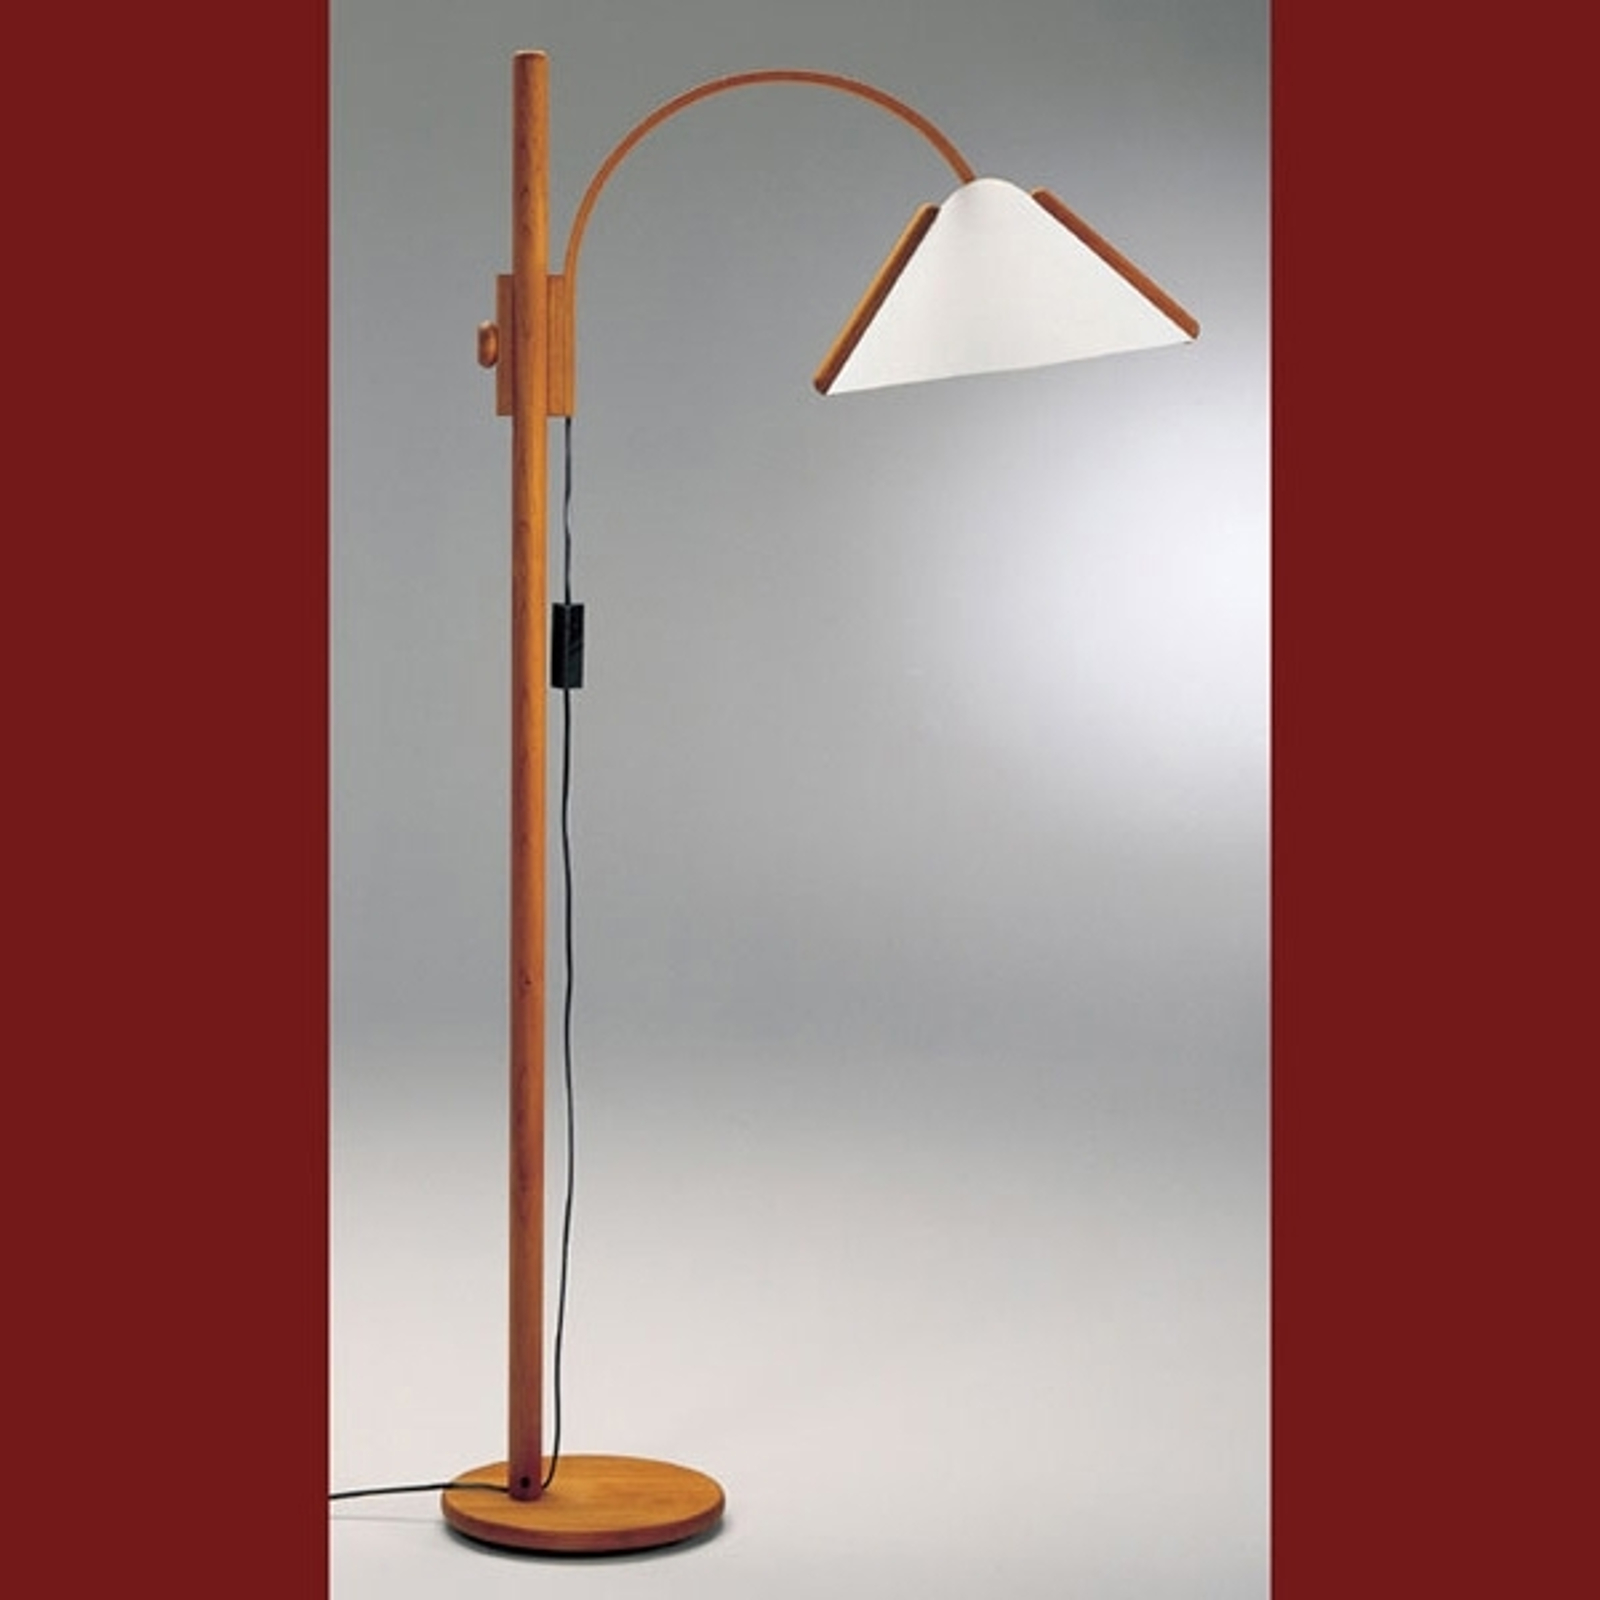 Arcade - elegant floor lamp with a wooden frame_2600011_1